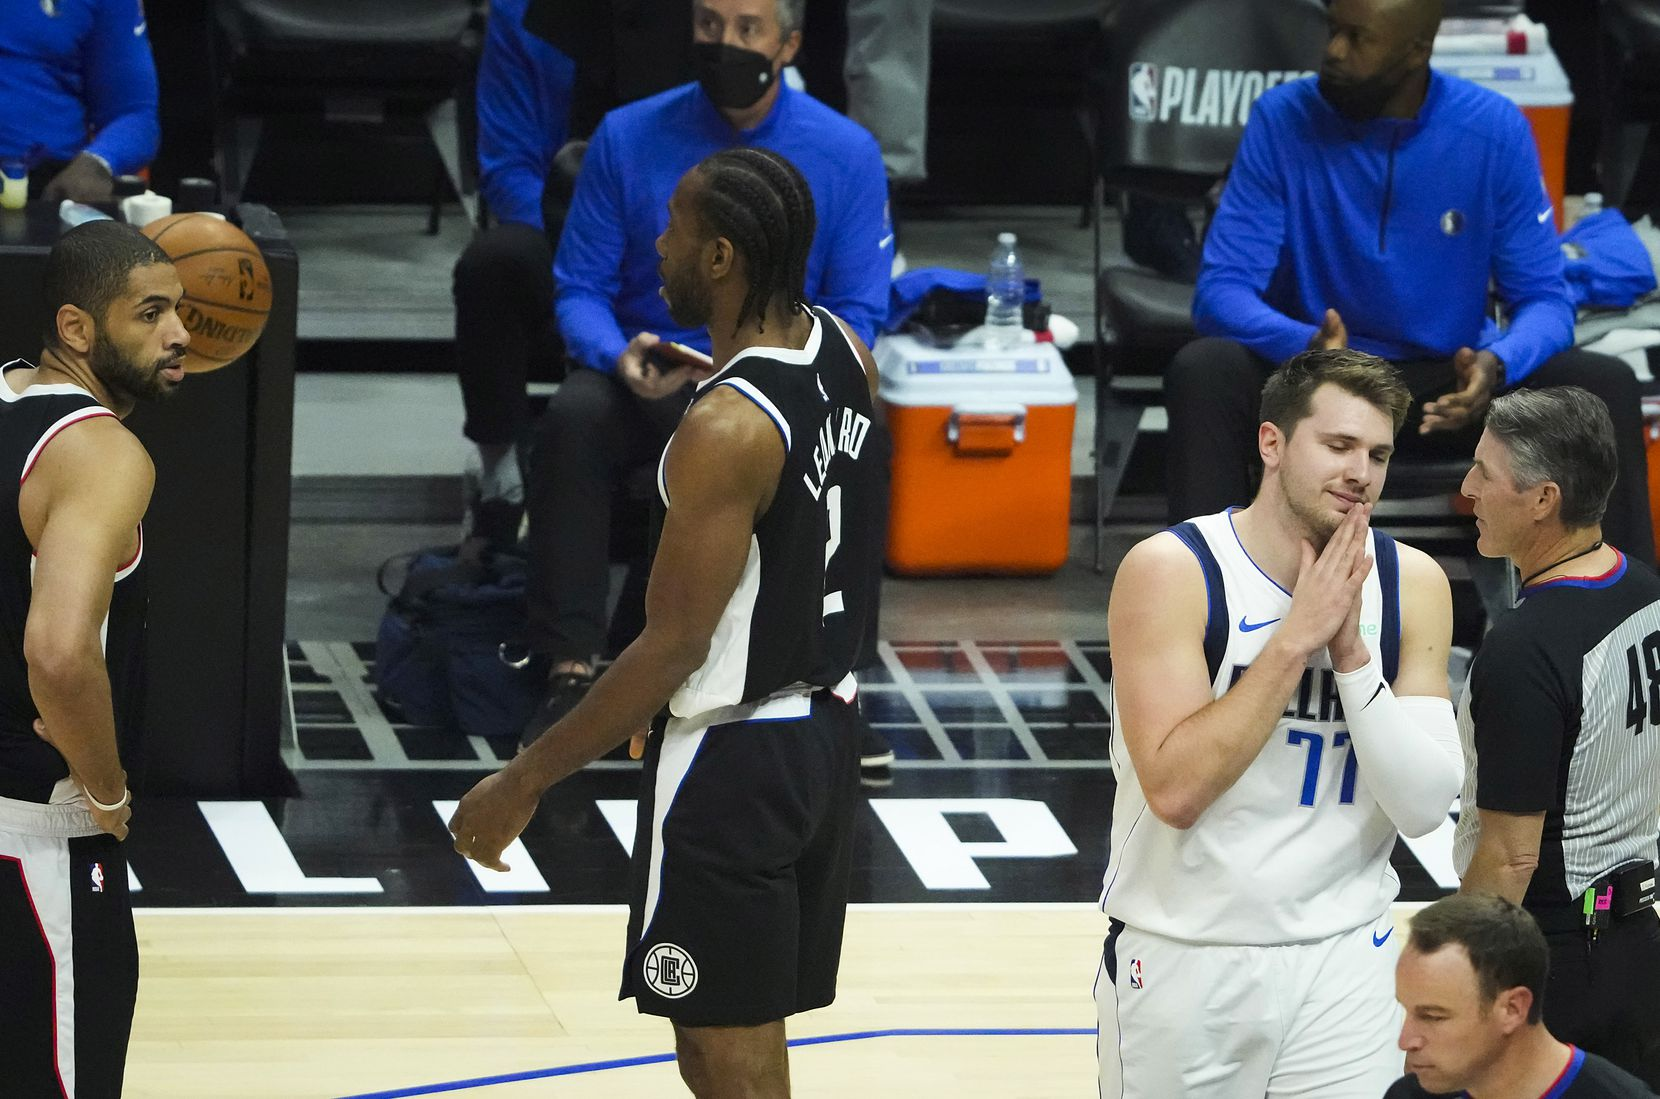 Dallas Mavericks guard Luka Doncic (77) reacts after having a call go against him during the first quarter of Game 7 of an NBA playoff series against the LA Clippers at the Staples Center on Sunday, June 6, 2021, in Los Angeles.